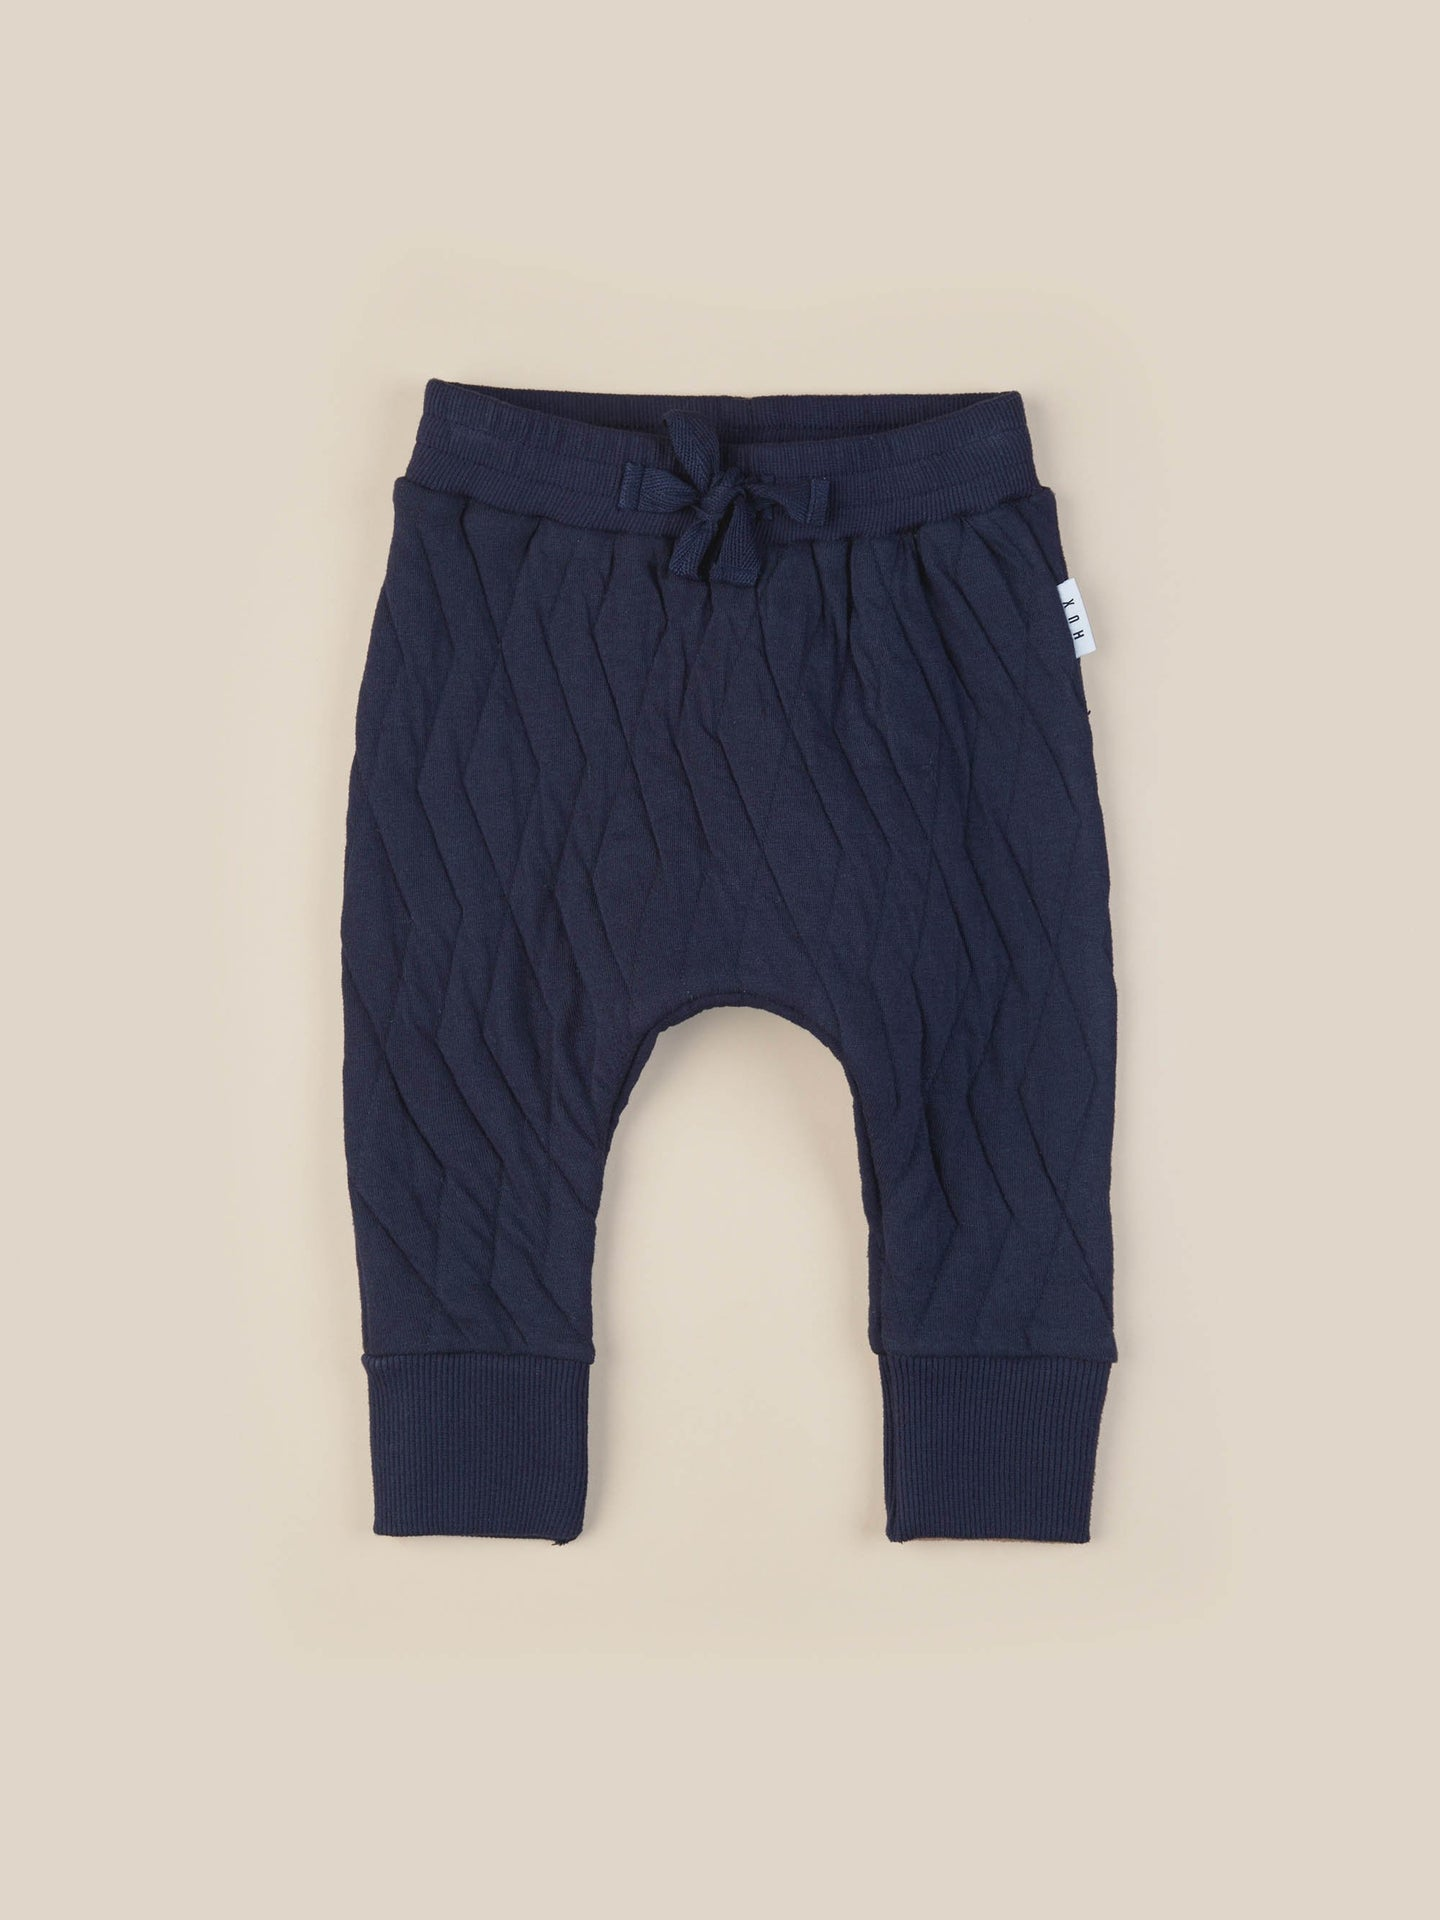 STITCH PANT KID - NAVY